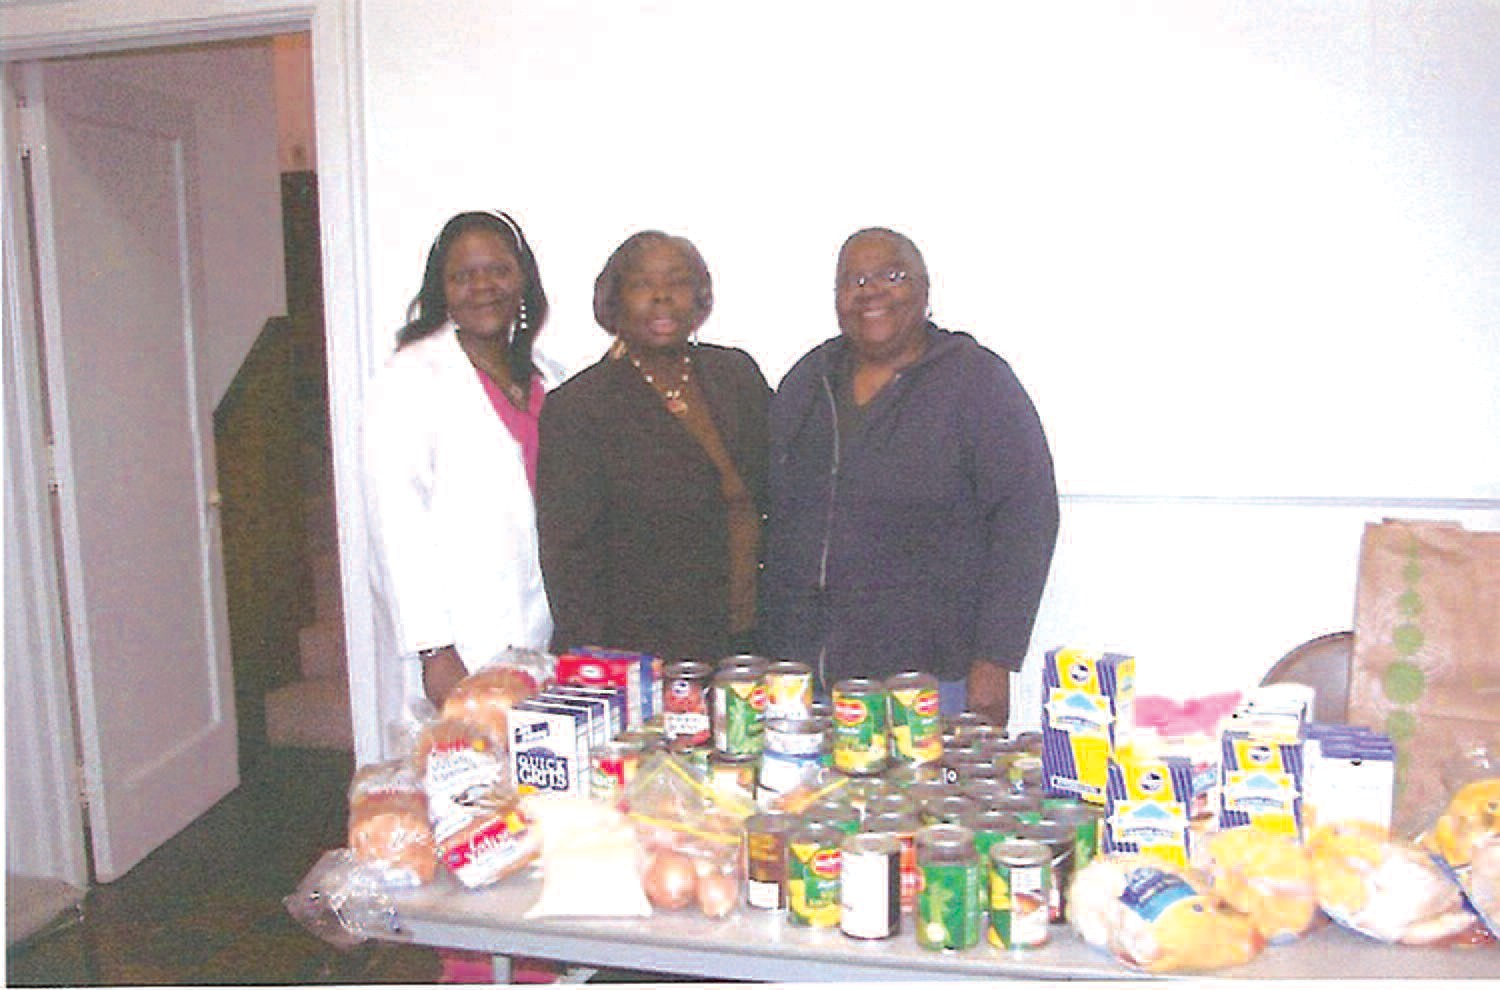 Pictured left to right are Sis. Diane Poole, Financial Secretary, Sis. Alfreda Kimble, Worthy Matron, and Sis, Ruby White, Chaplin.